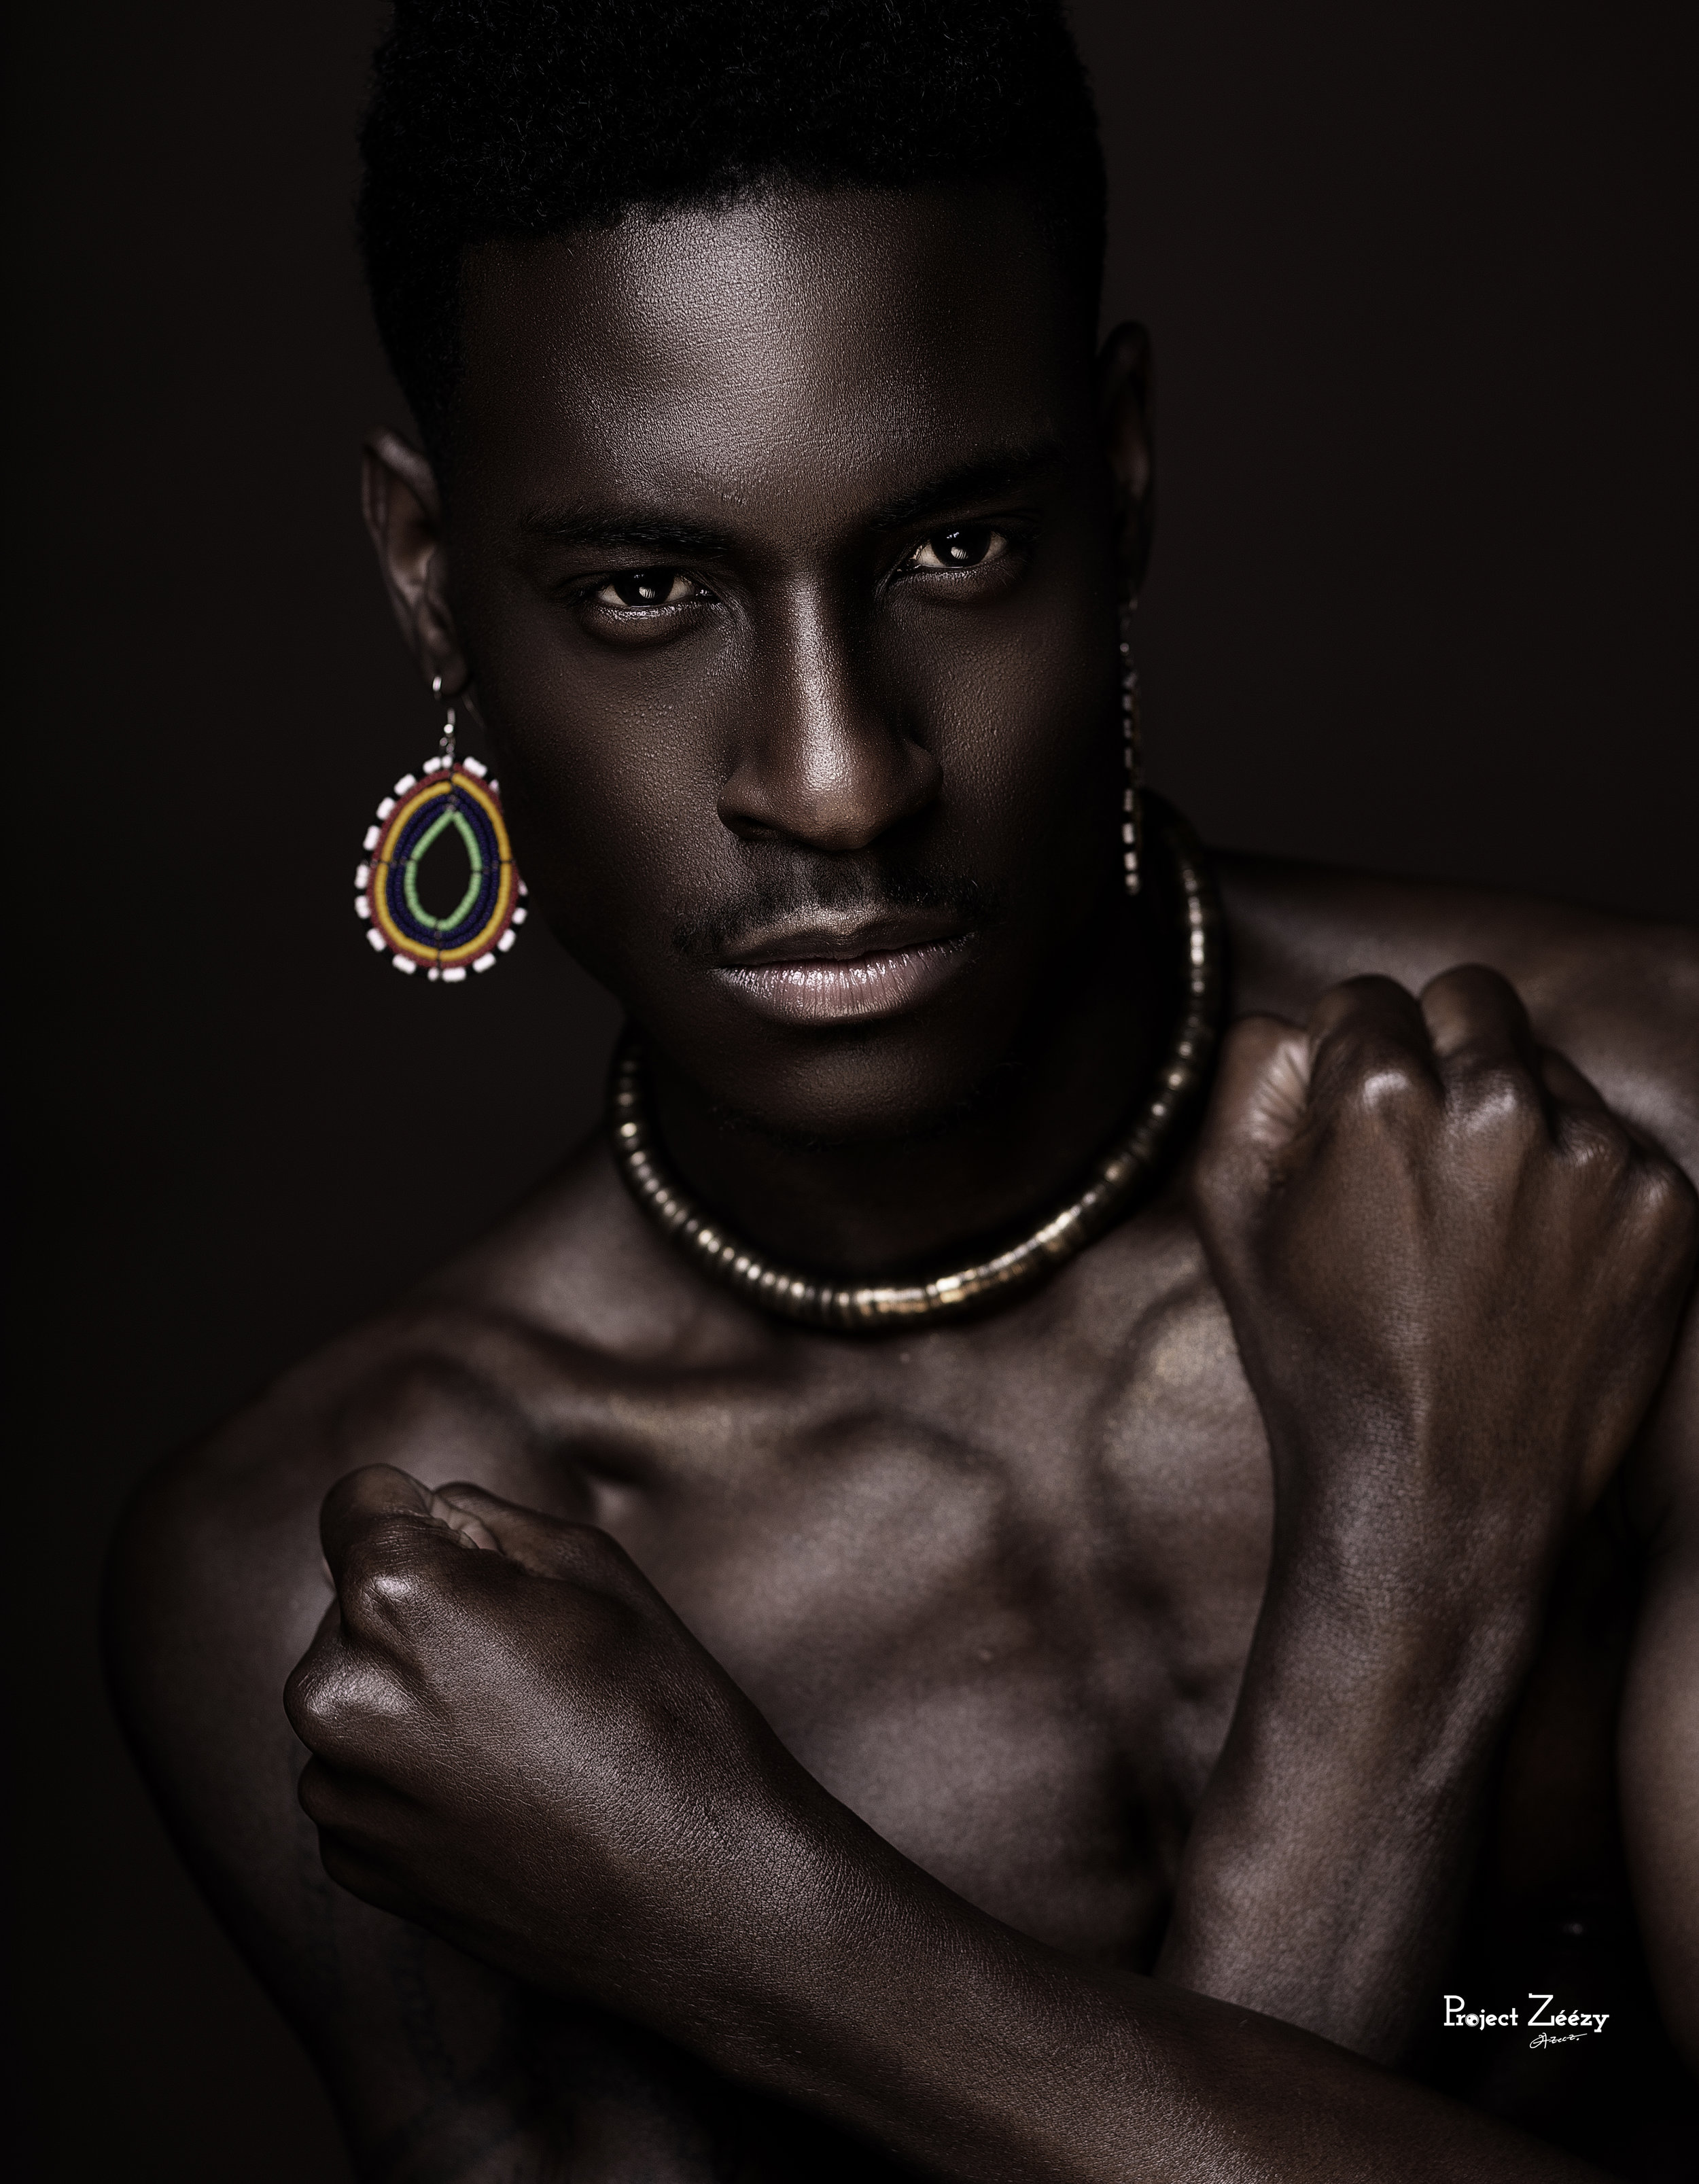 Model:David, make up done by Vanessa Lester, photoshoot was inspired by the movie BlackPanther which was show-cased during Black History Month Feb 2018,Photographed by Projectzeezy. -